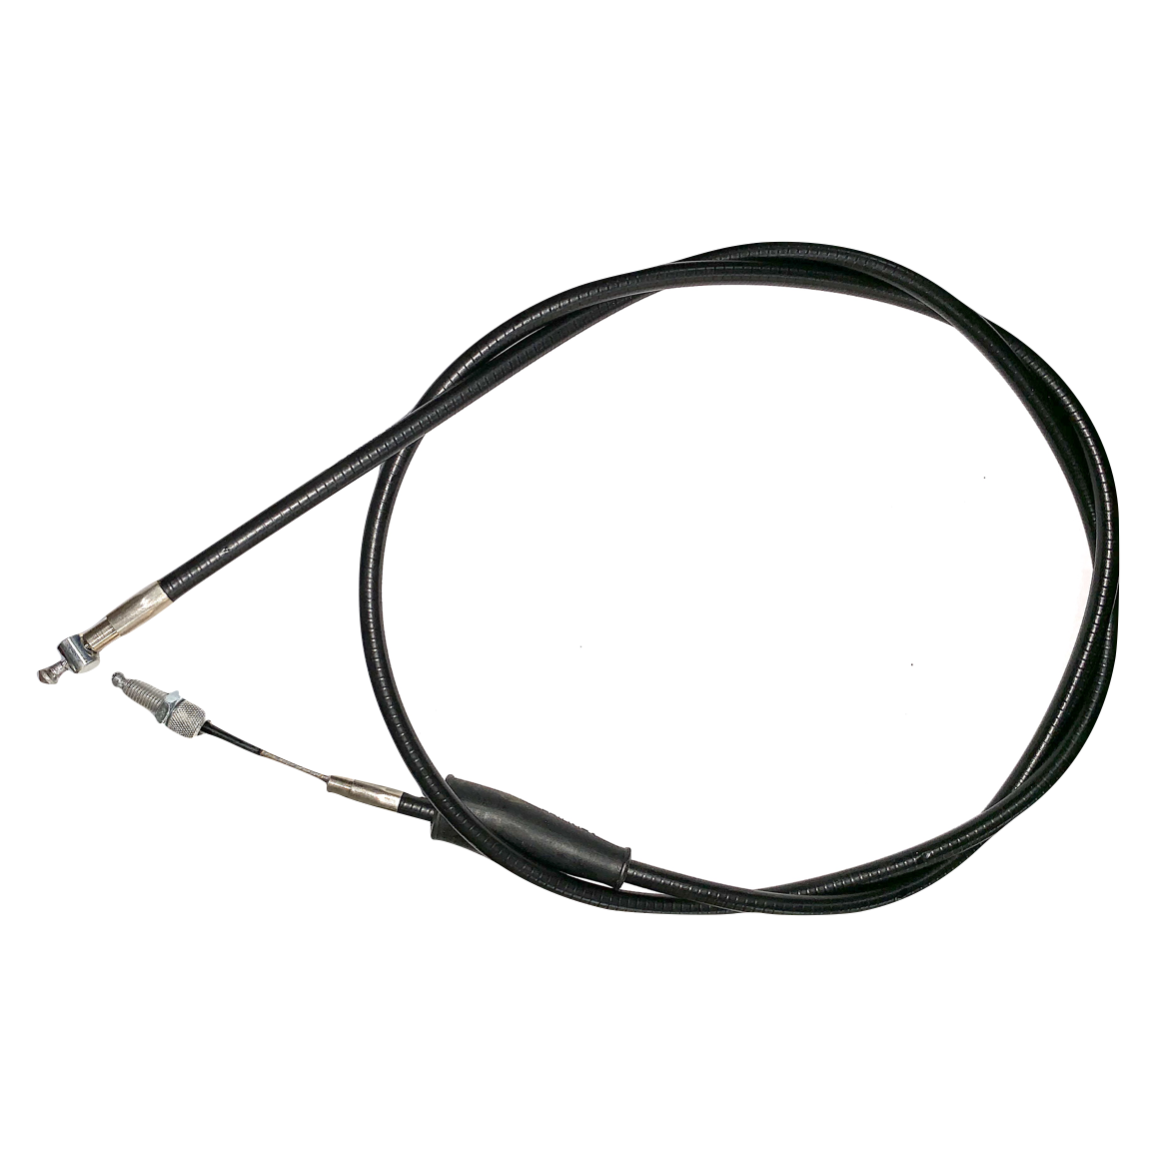 VENHILL FEATHERLIGHT CLUTCH CABLE FOR DOMINO LEVER - BLACK